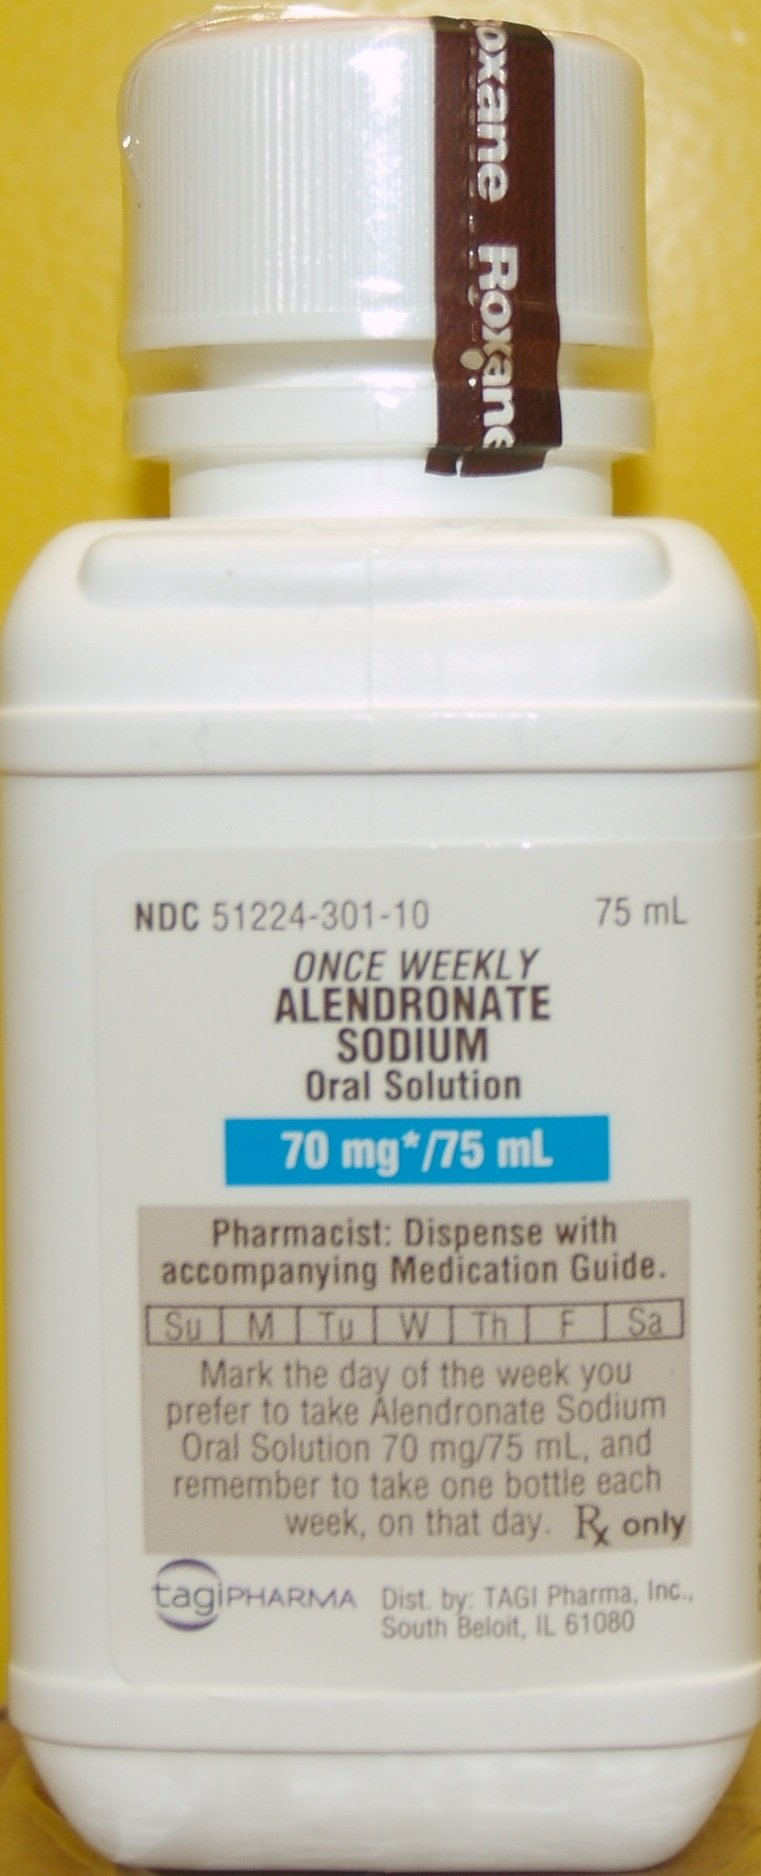 Alendronate Sodium Generic Fosamax 70 Mg 4x75 Ml Solution By Tagi Pharma